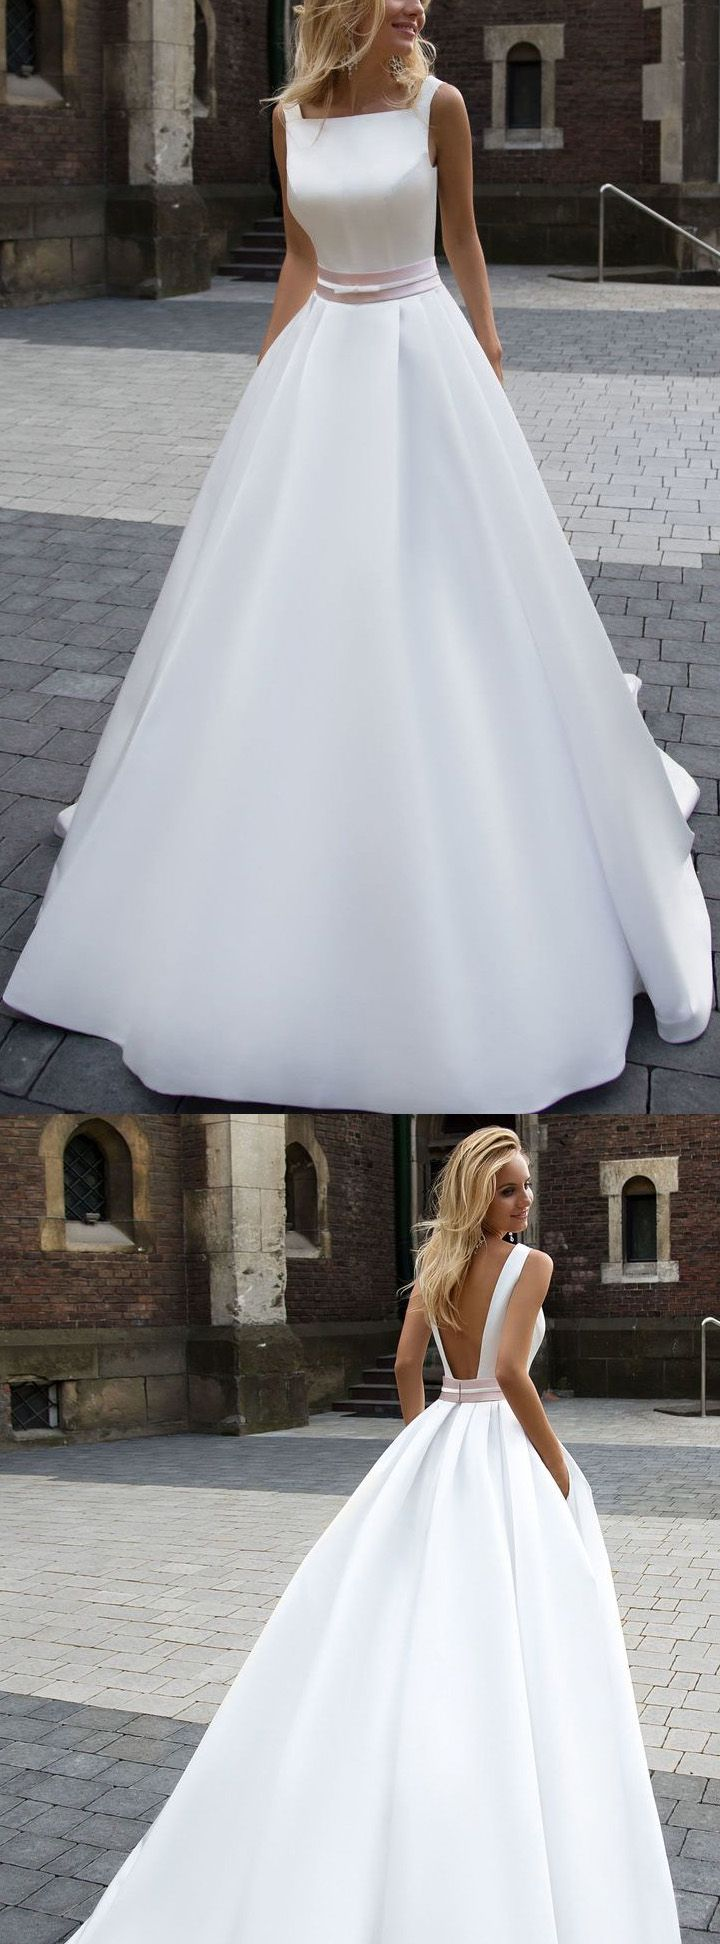 Wedding dress short in front with long train   best Wedding Dresses images on Pinterest